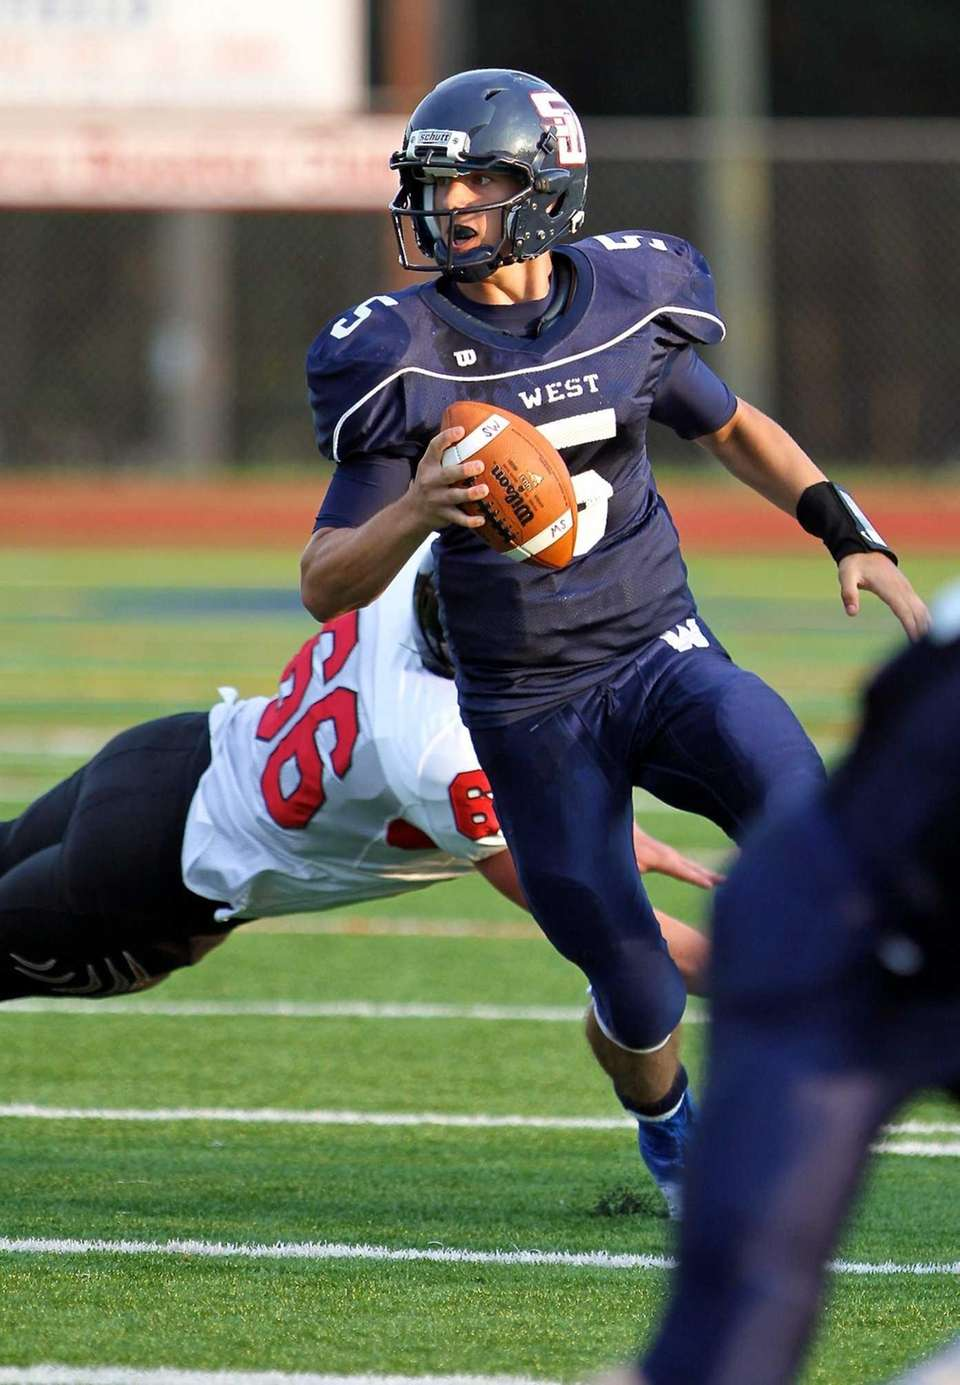 Smithtown West quarterback Matt Heldberg Jr. scrambles out